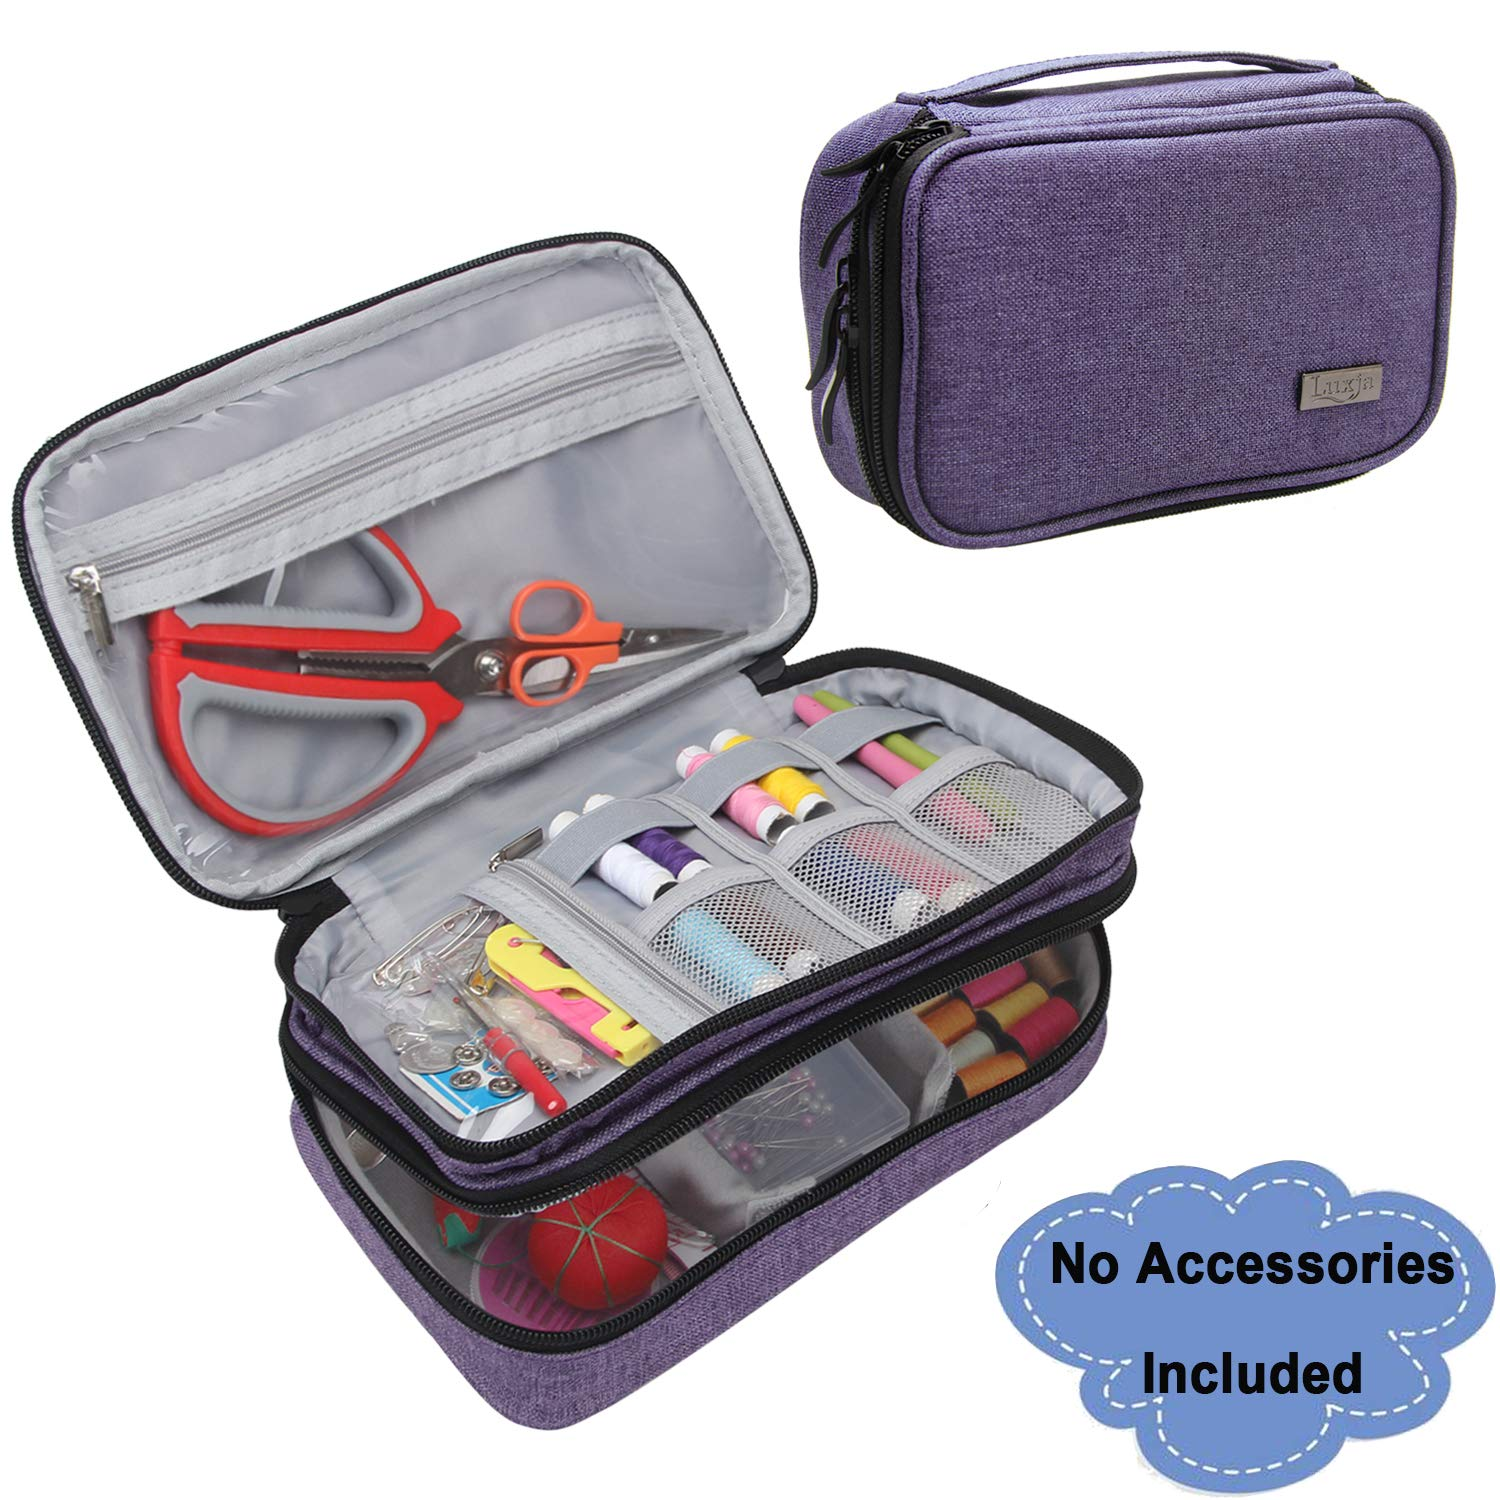 Luxja Sewing Accessories Organizer, Double-Layer Sewing Supplies Organizer for Needles, Scissors, Measuring Tape, Thread and Other Sewing Tools (NO Accessories Included), Large/Purple by LUXJA